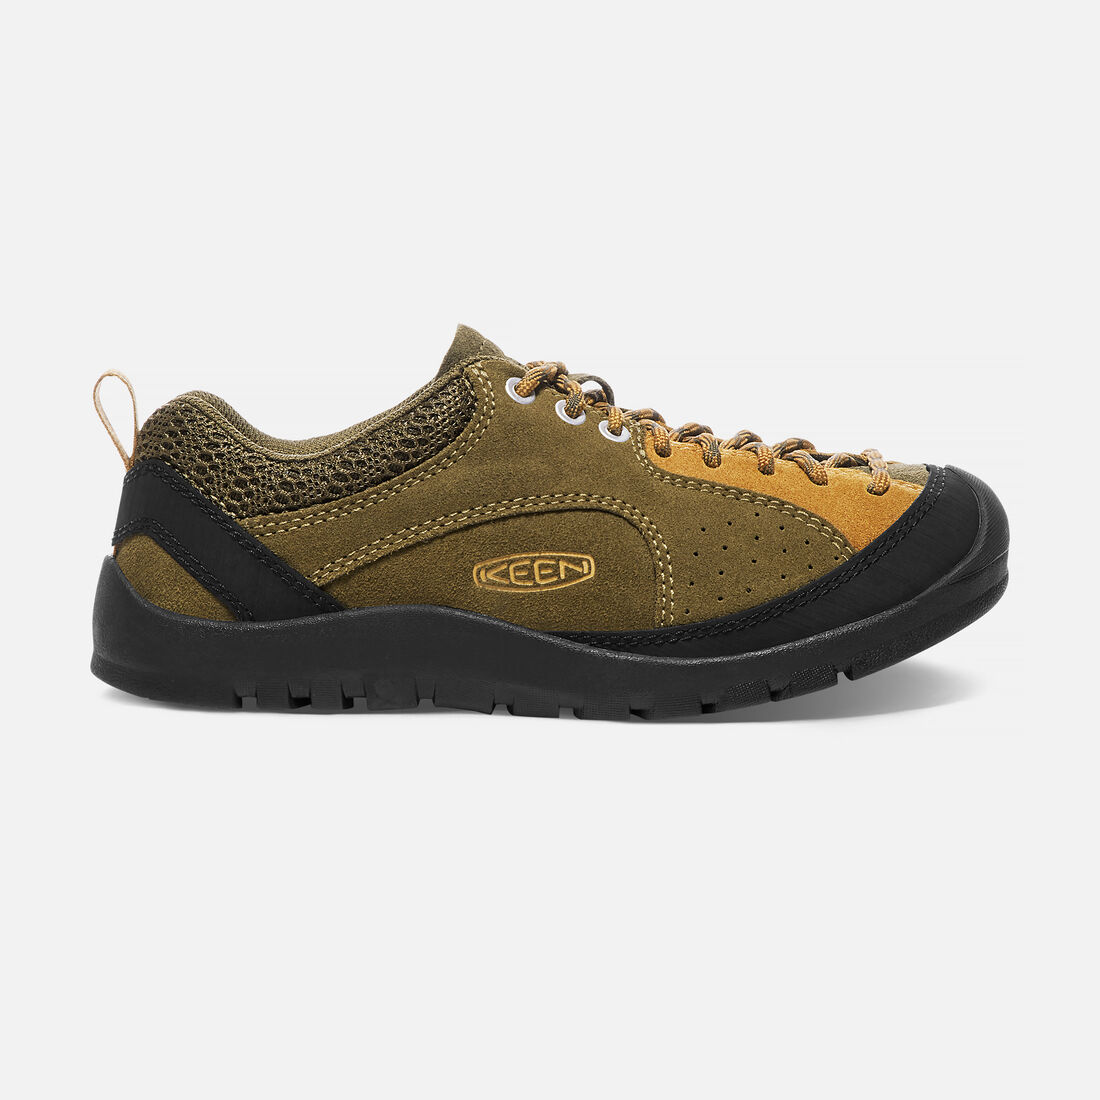 Women's Jasper Rocks in Military Olive/Cathay Spice - large view.